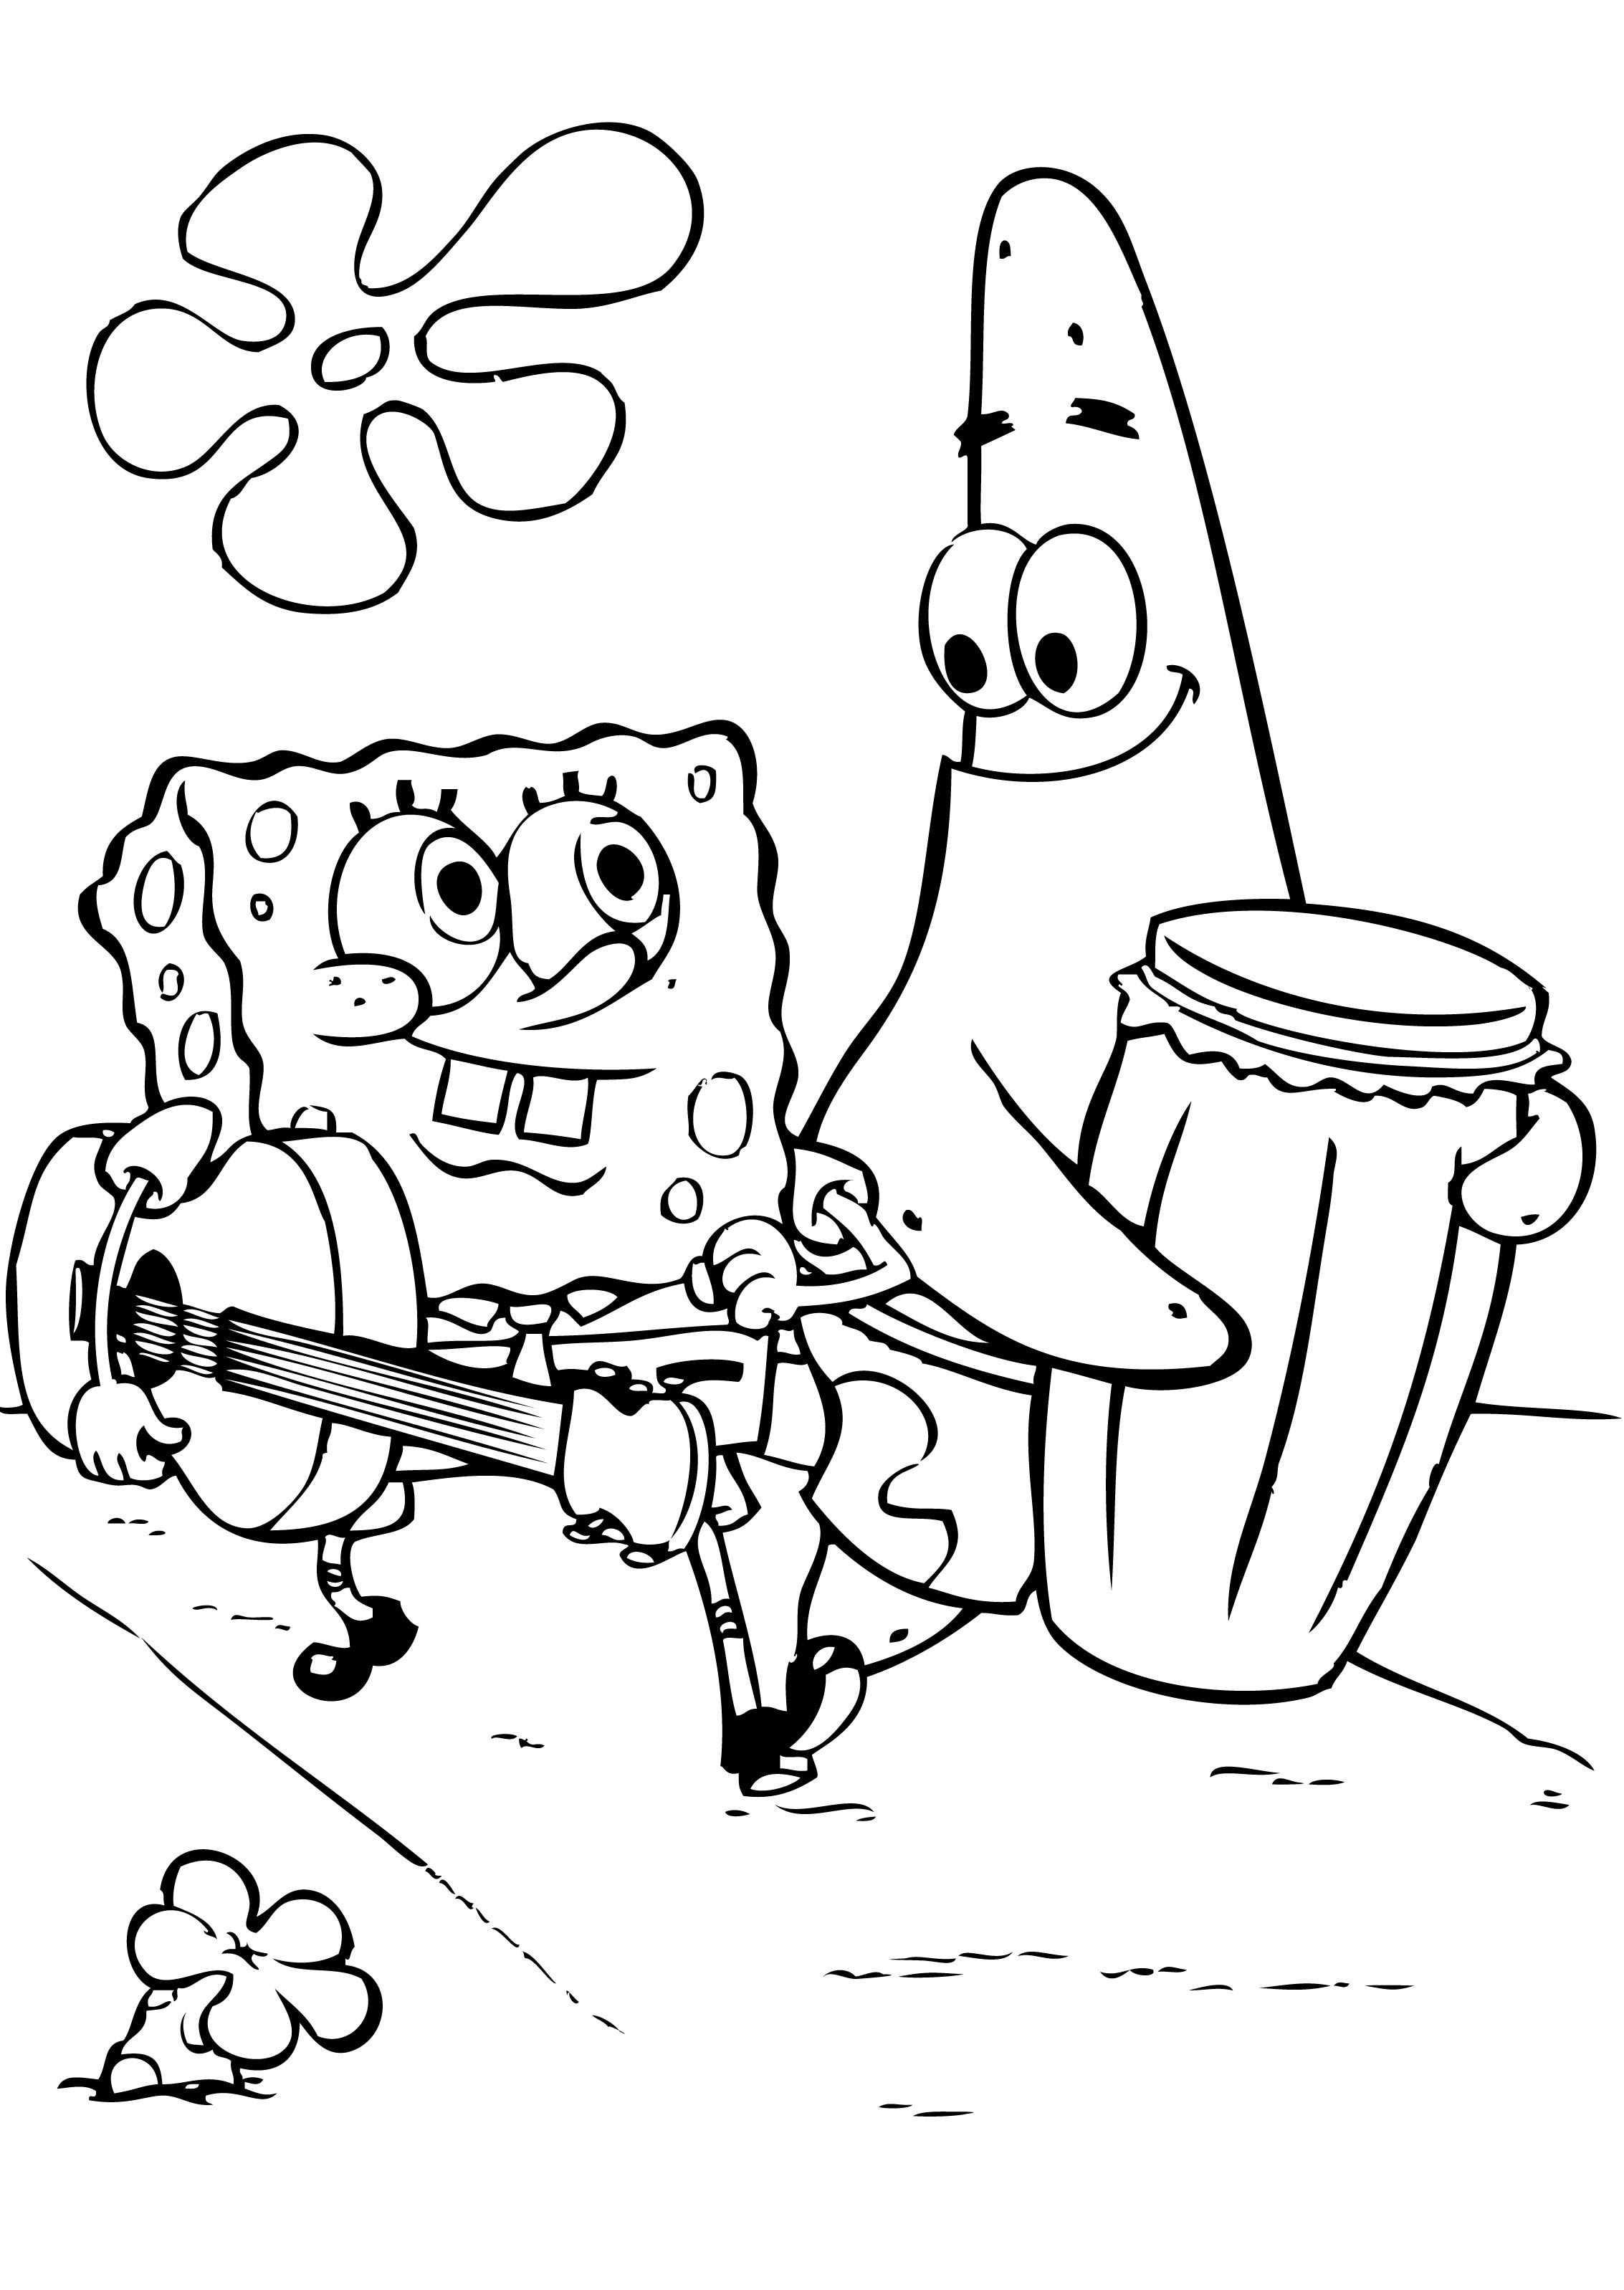 Spongebob Coloring Pages Free | COLORING PAGES FOR FREE | Pinterest ...